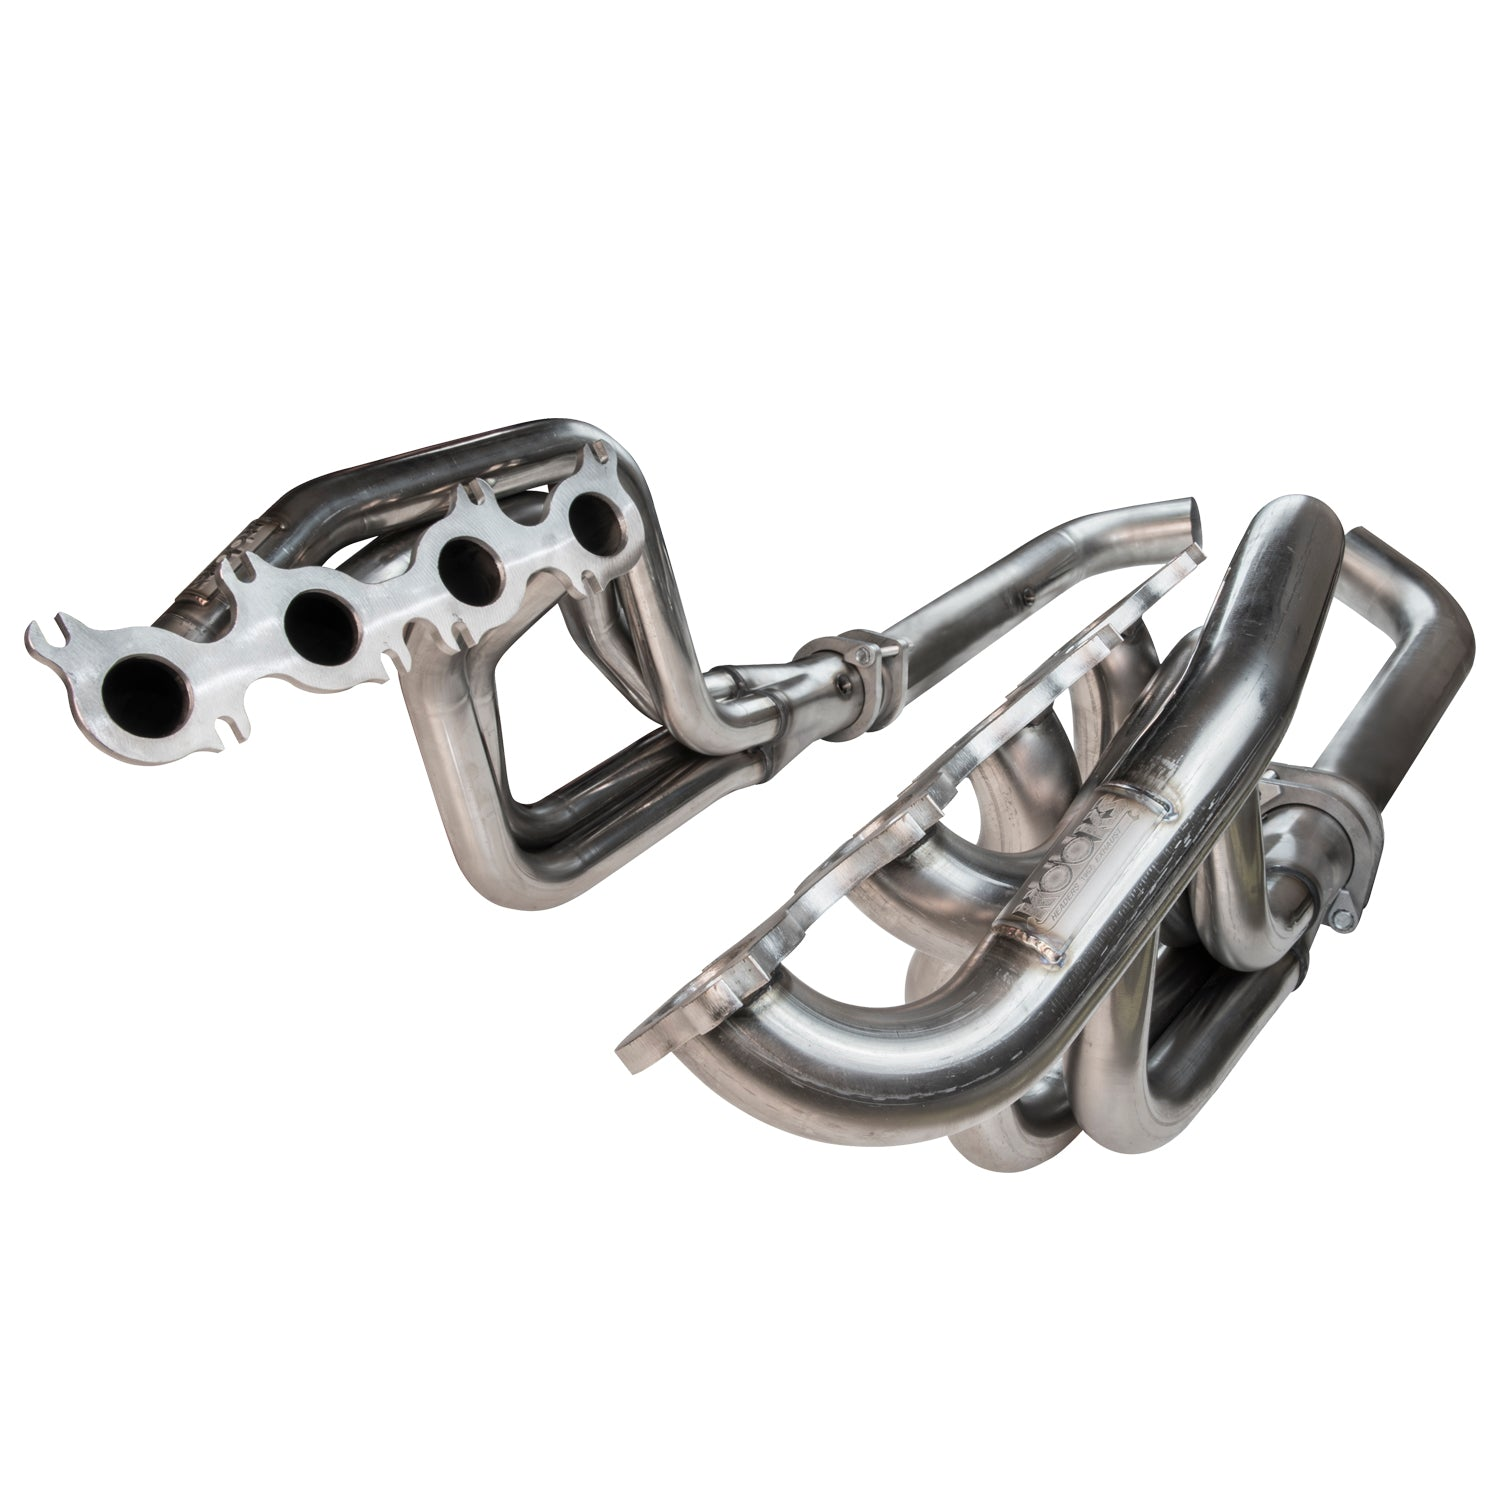 "RIGHT HAND DRIVE 2015 + Mustang GT 5.0L 1 3/4"" x 3"" Stainless Steel Long Tube Header w/ Off Road (Non-Catted) Connection Pipe"